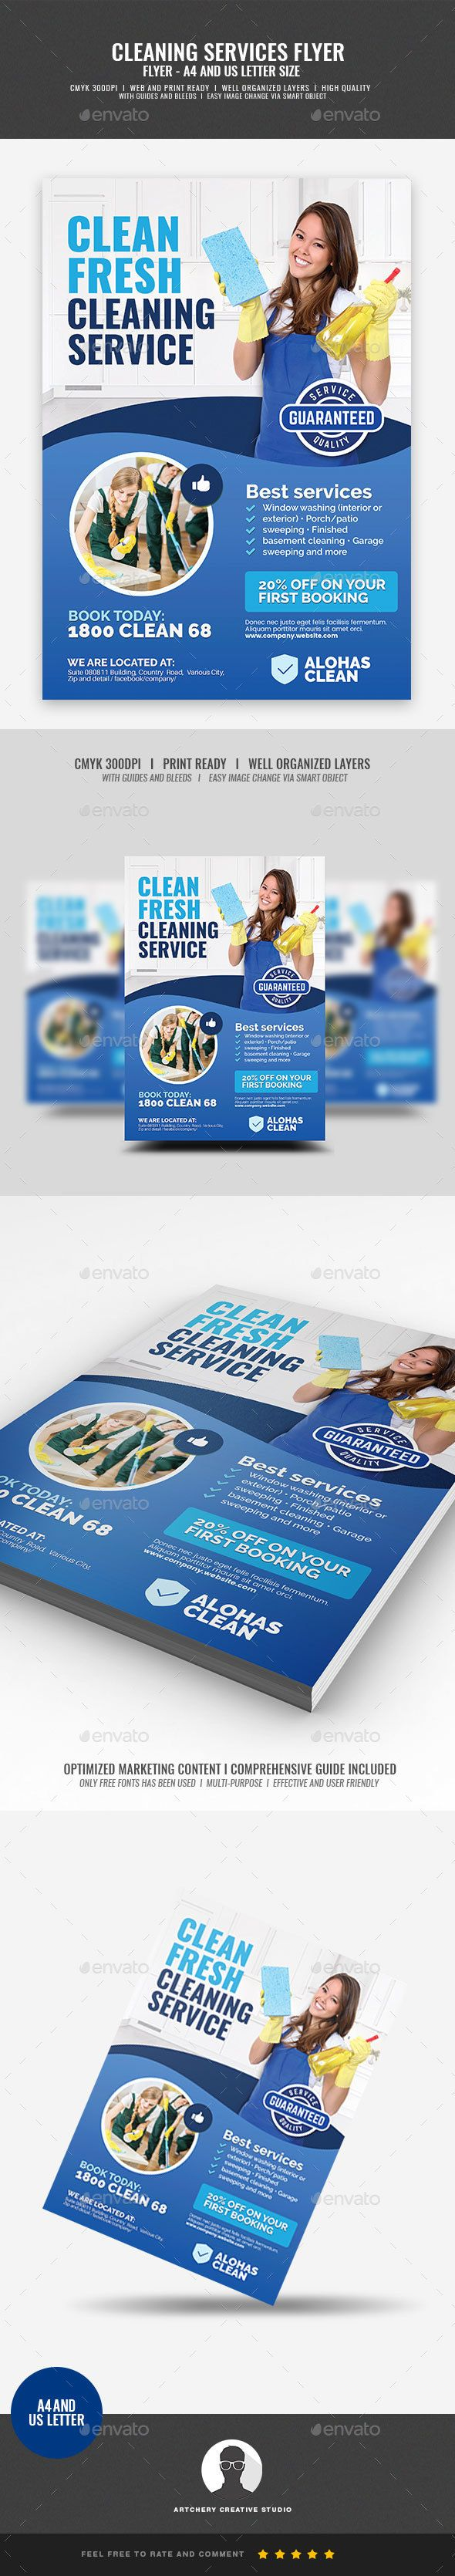 commercial house cleaning services flyer template psd